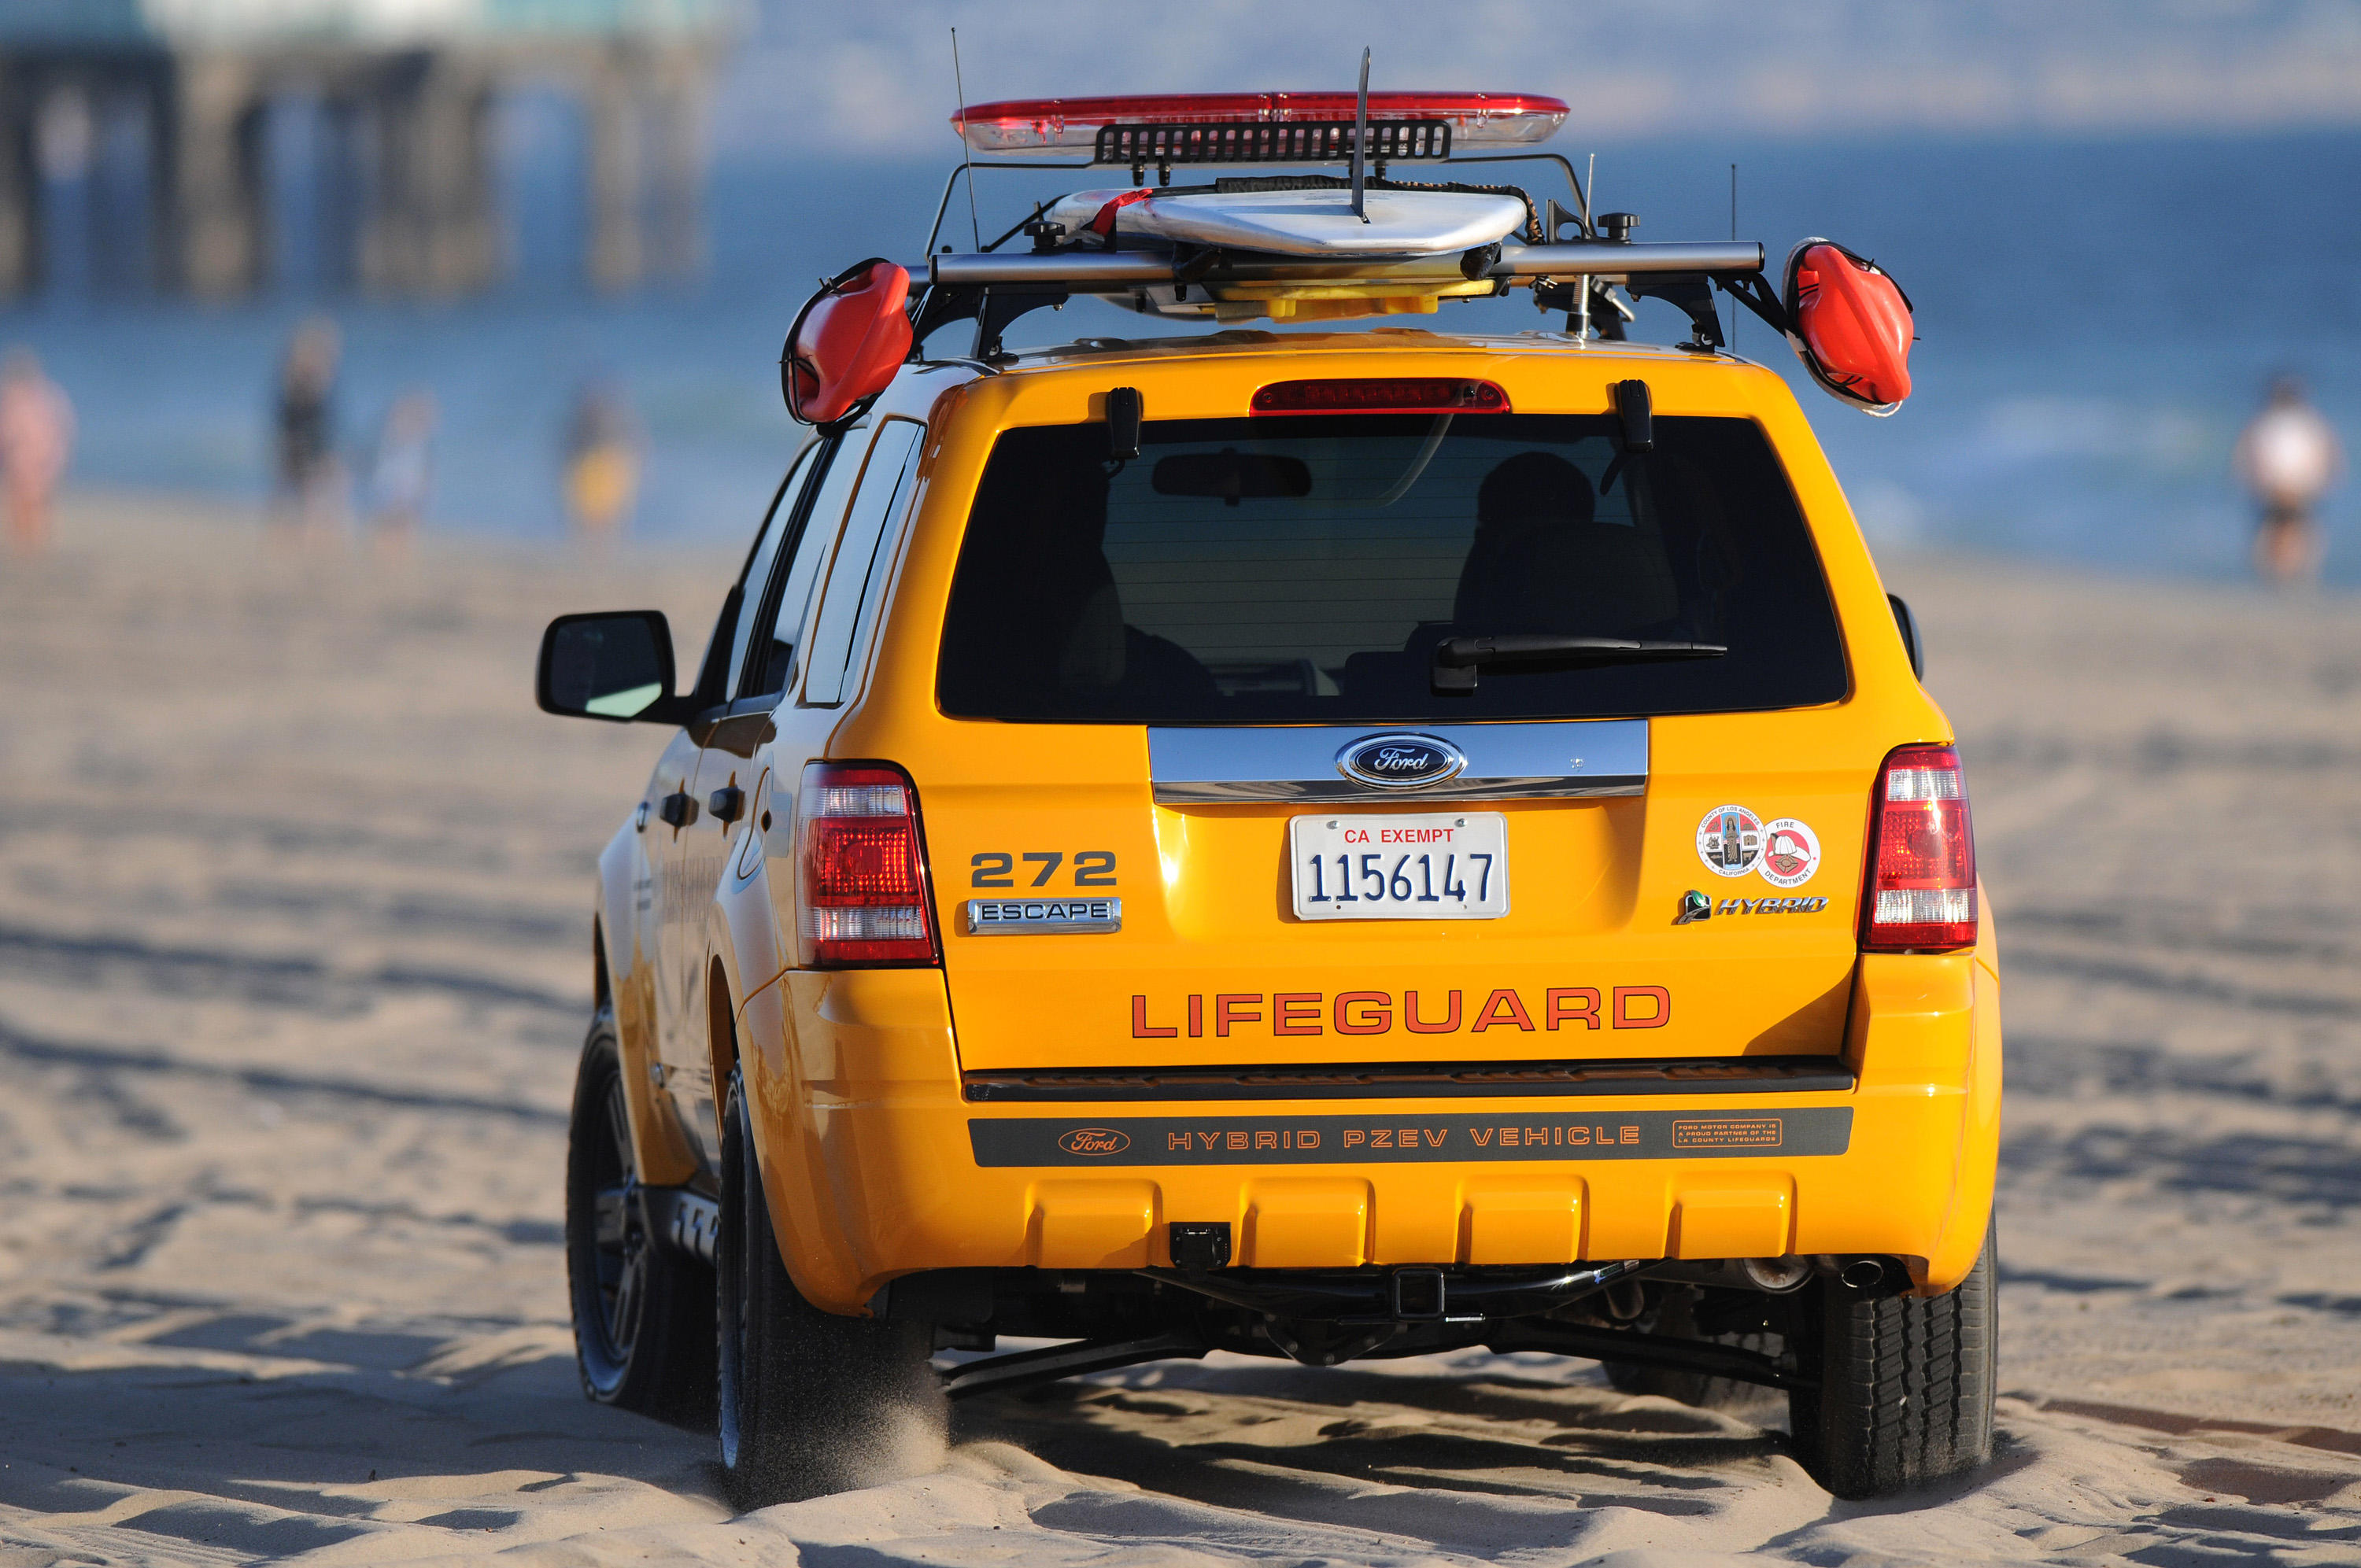 2008-ford-escape-hybrid-lifeguard-5